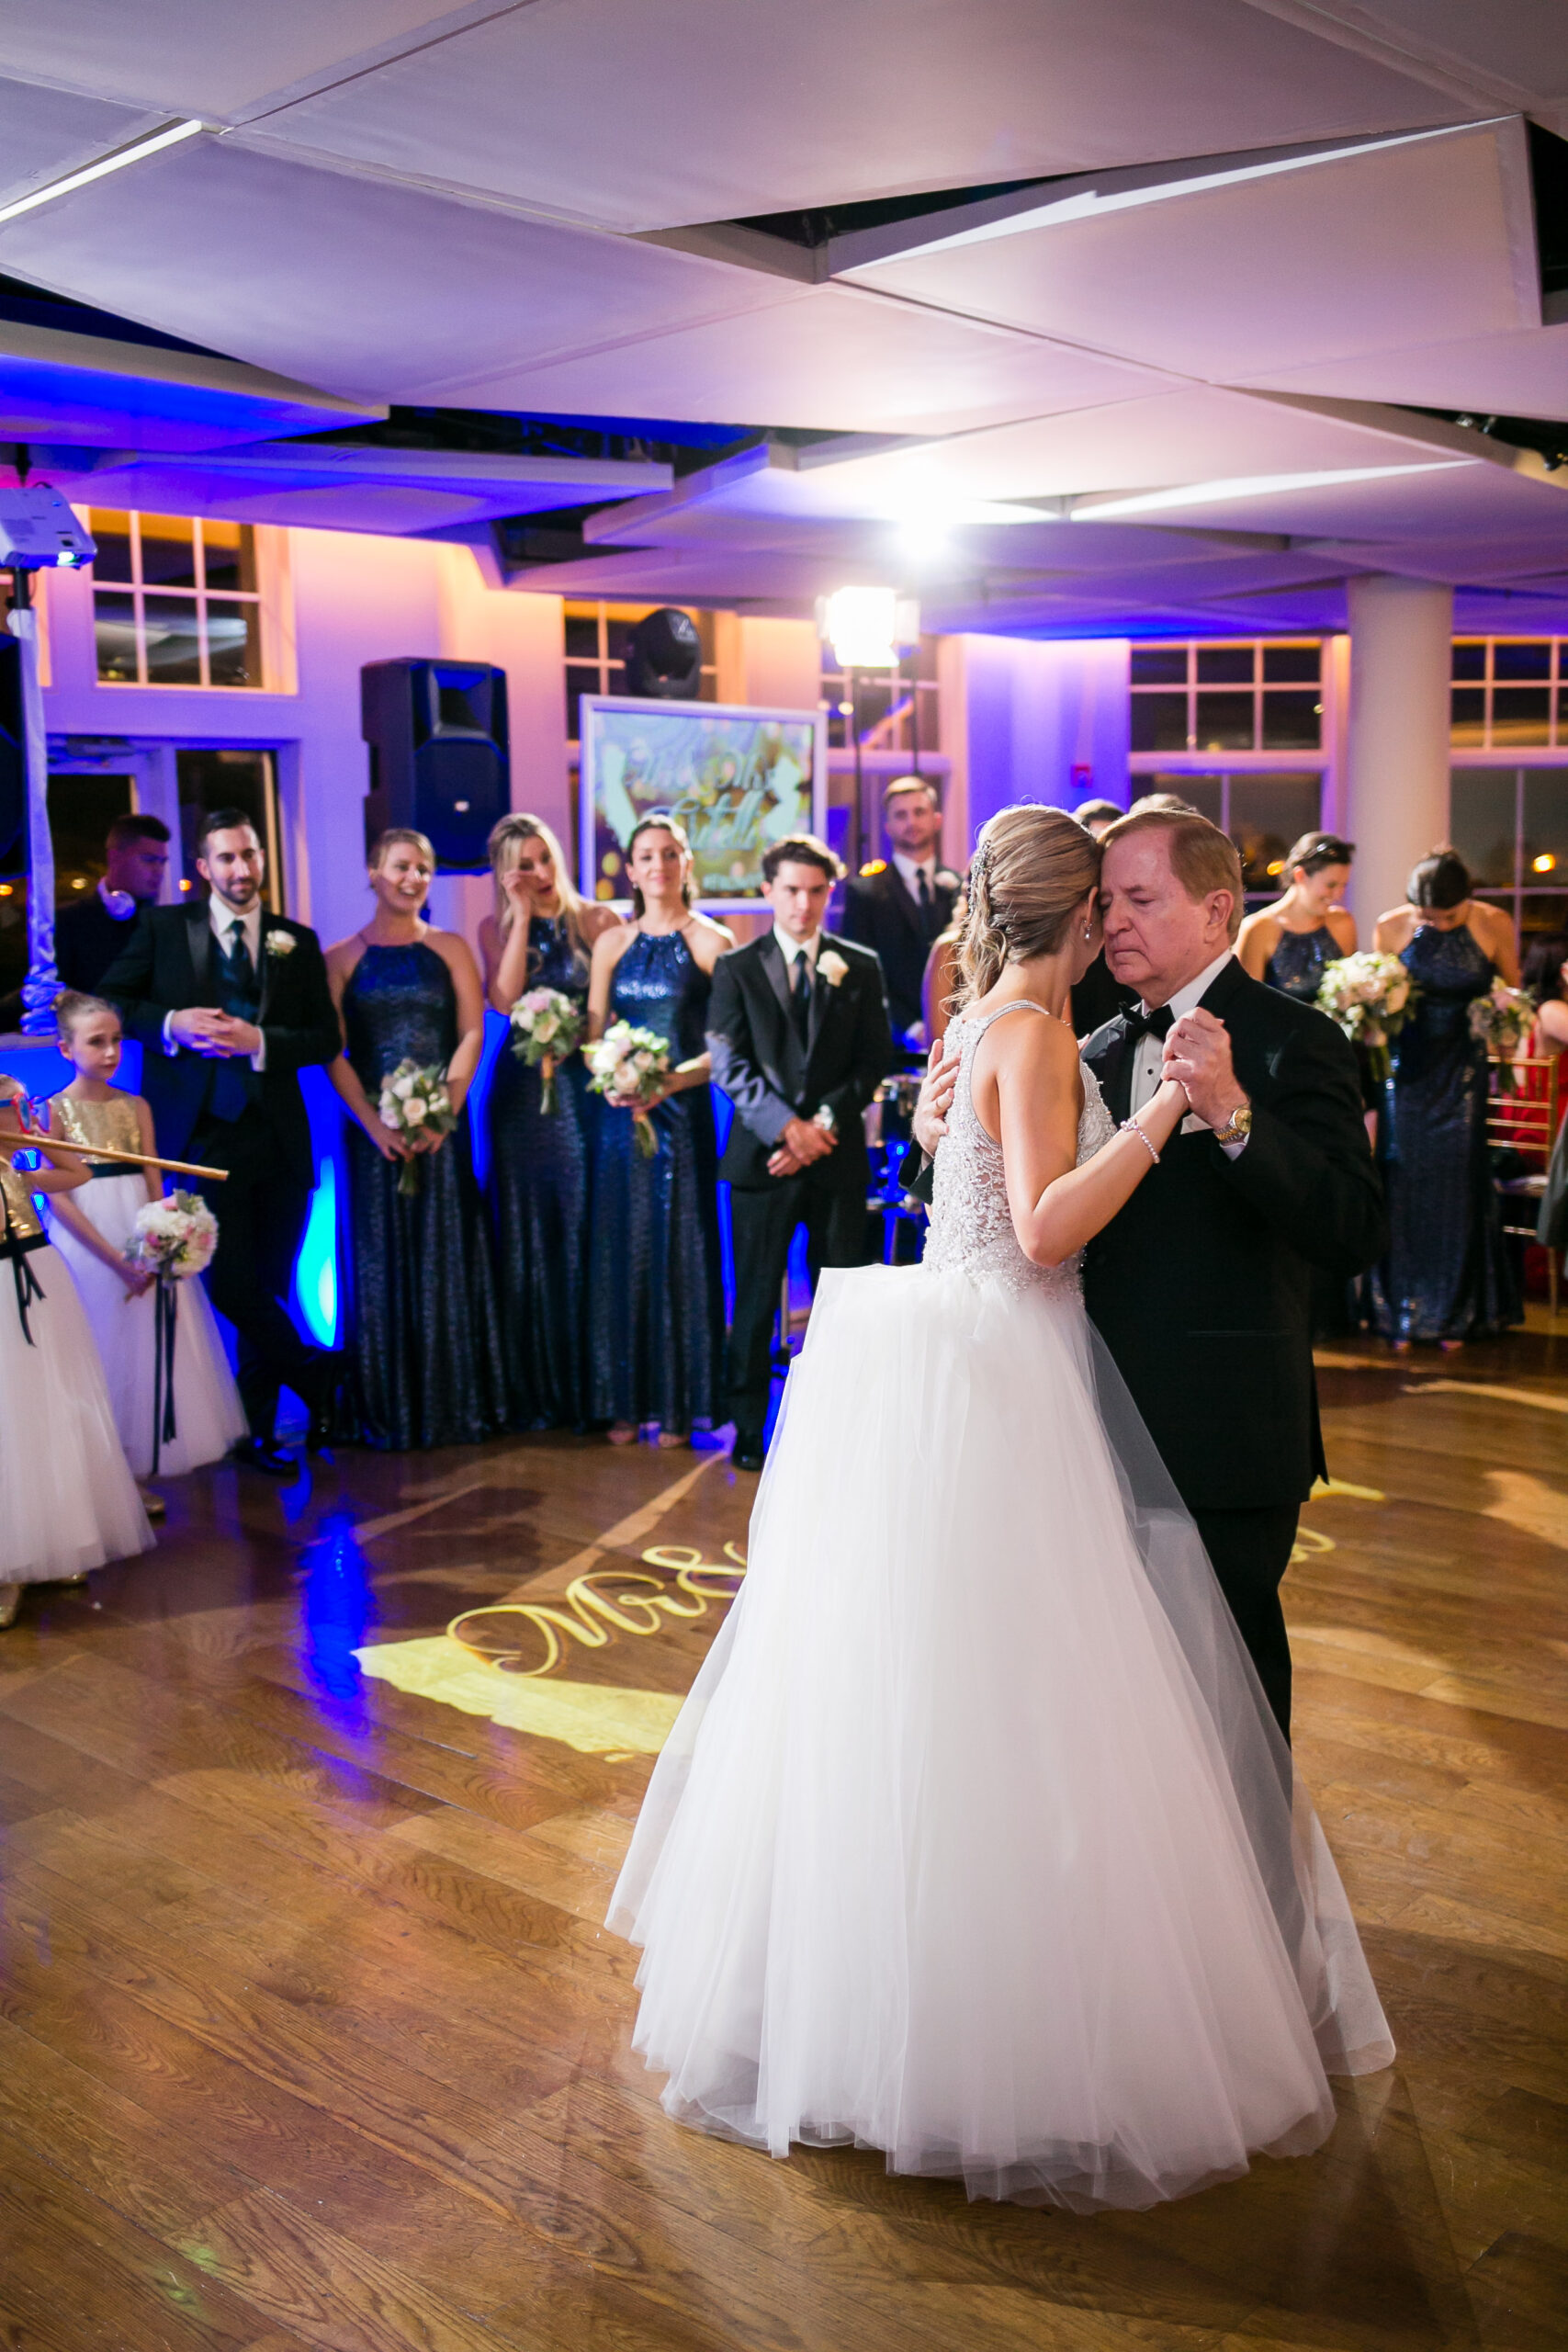 father of the bride dancing with daughter